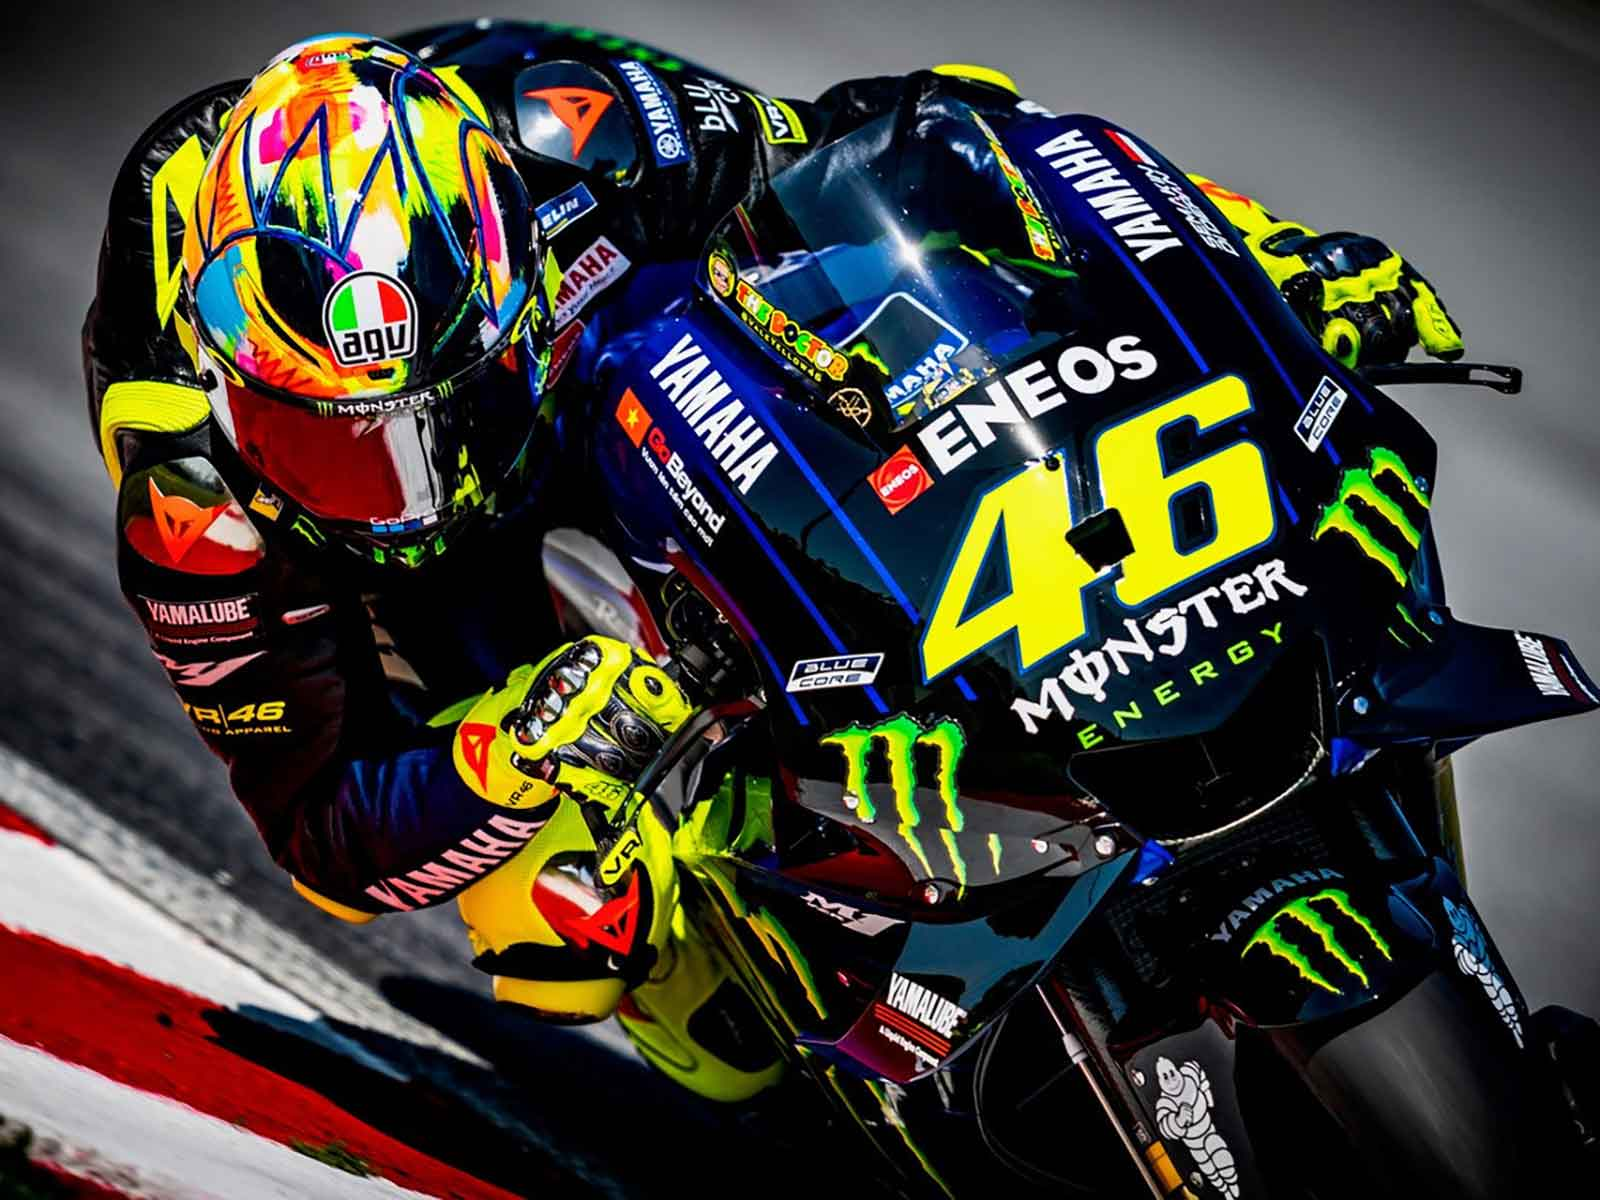 Valentino Rossi Wallpapers Top Free Valentino Rossi Backgrounds Wallpaperaccess